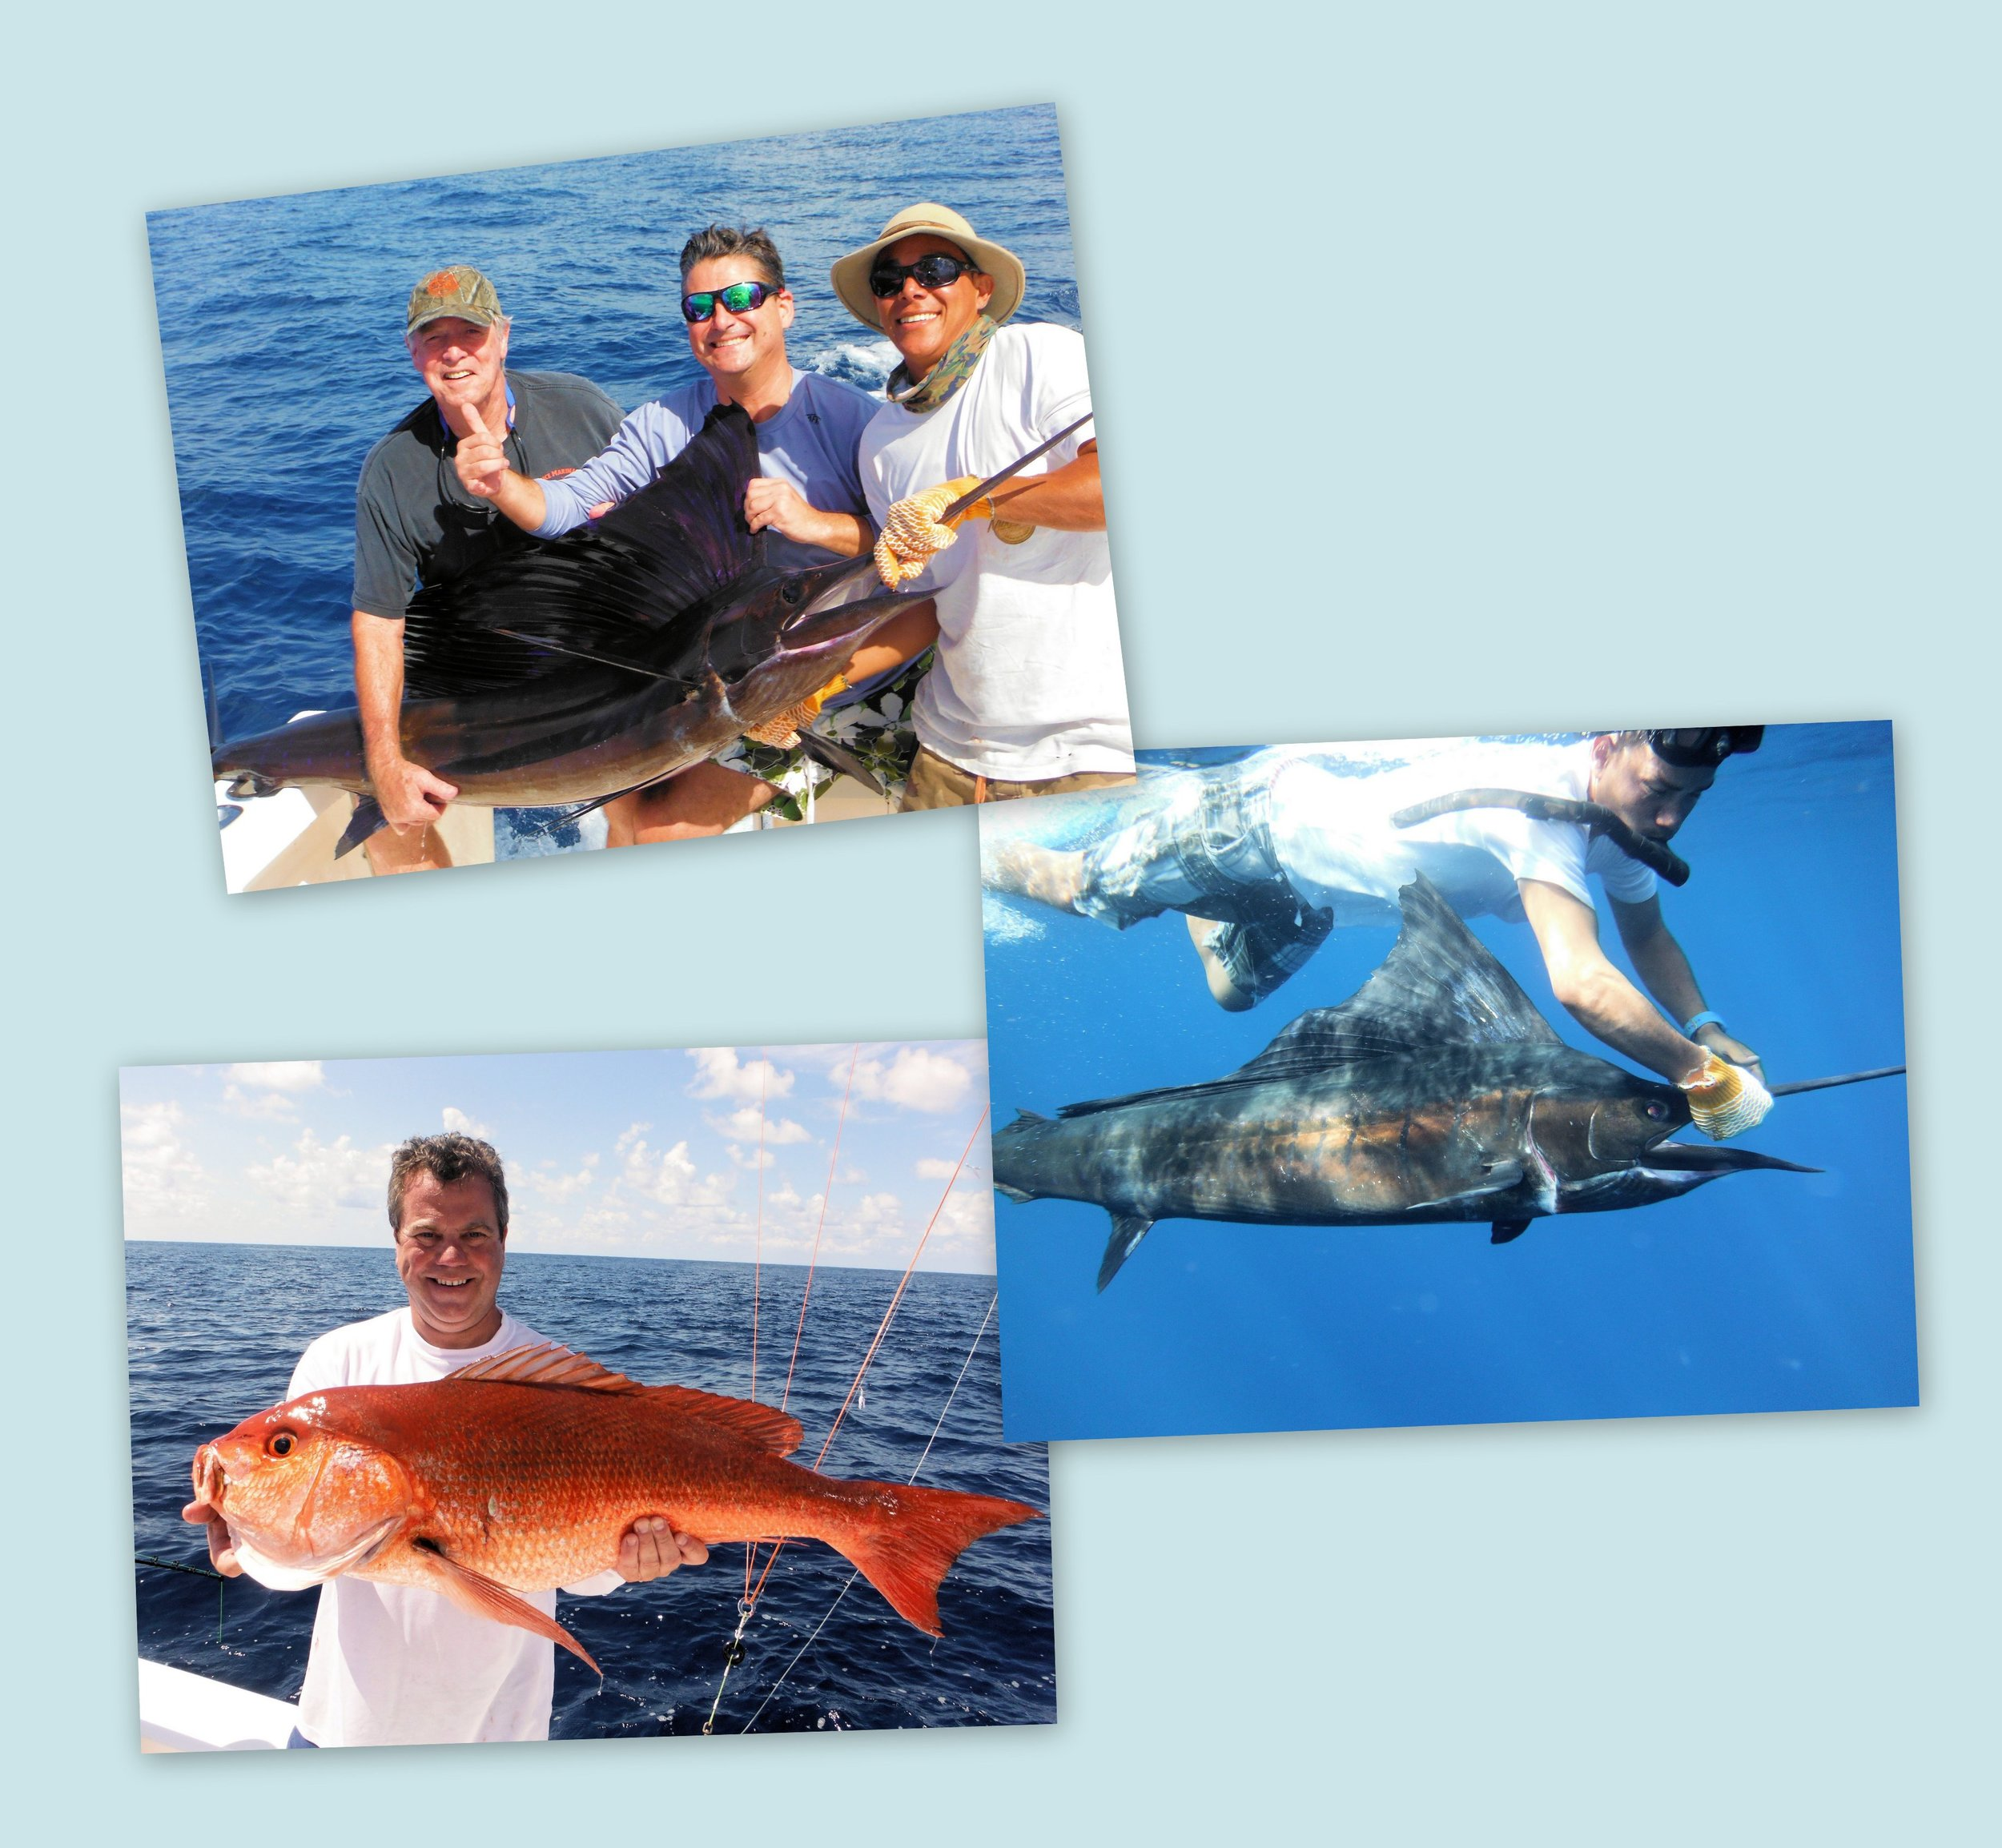 Top photo: Richard Nolan, Patrick Nolan and mate Keller - Middle Photo: captain Kelvin reviving & releasing sailfish. - Bottom Photo- Moonwalker Owner, Kenny Bertsch with35lb. snapper. January 26, 2014